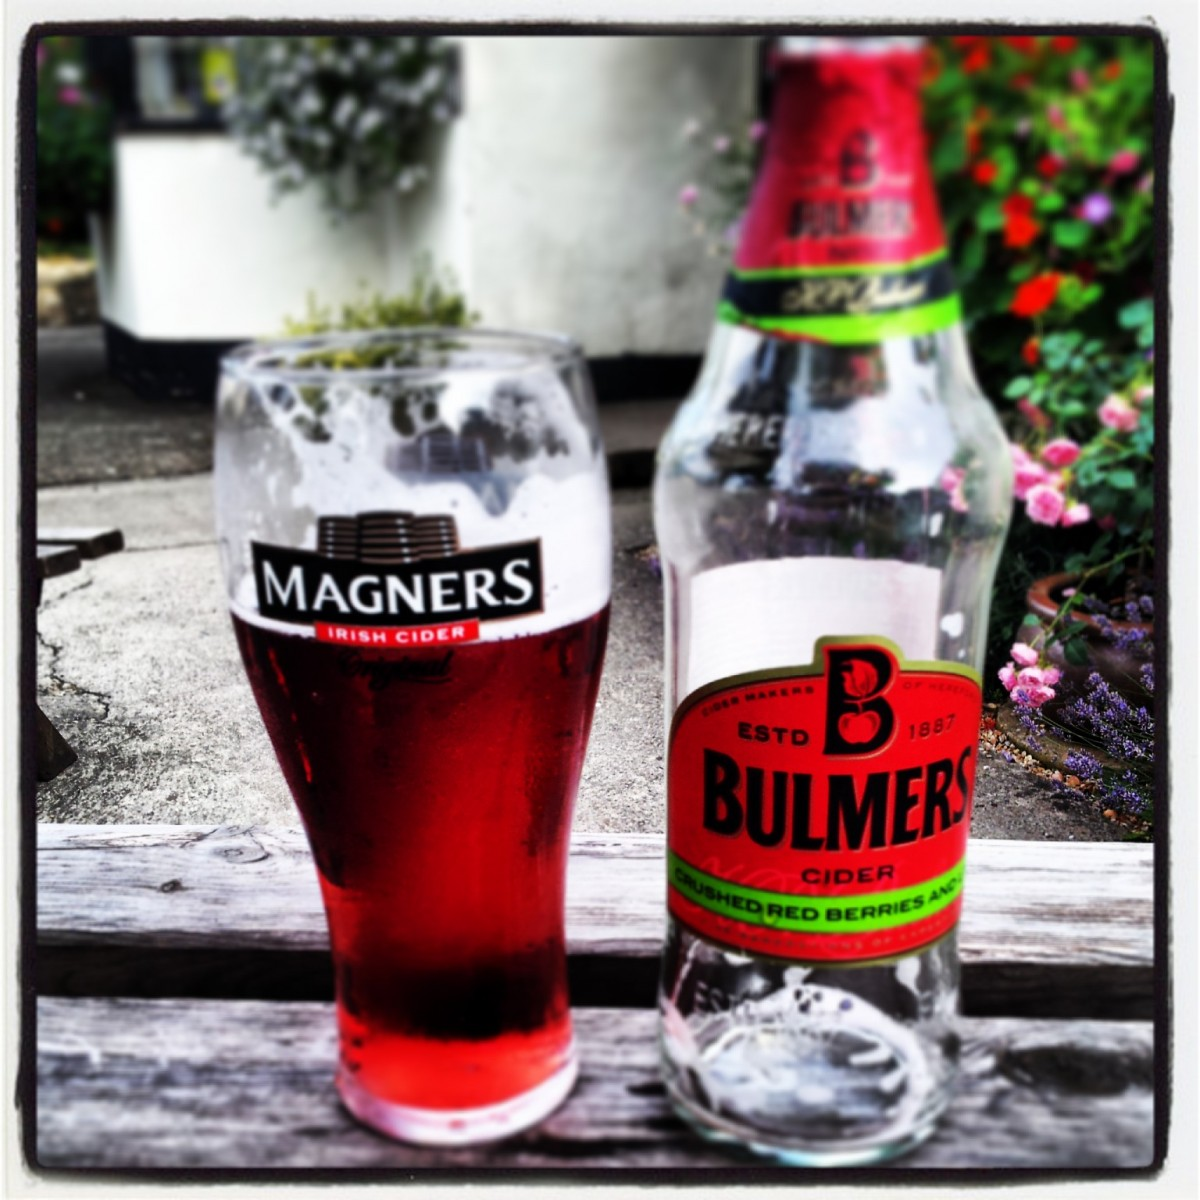 Bulmers, because there's nothing more country than cider, right?